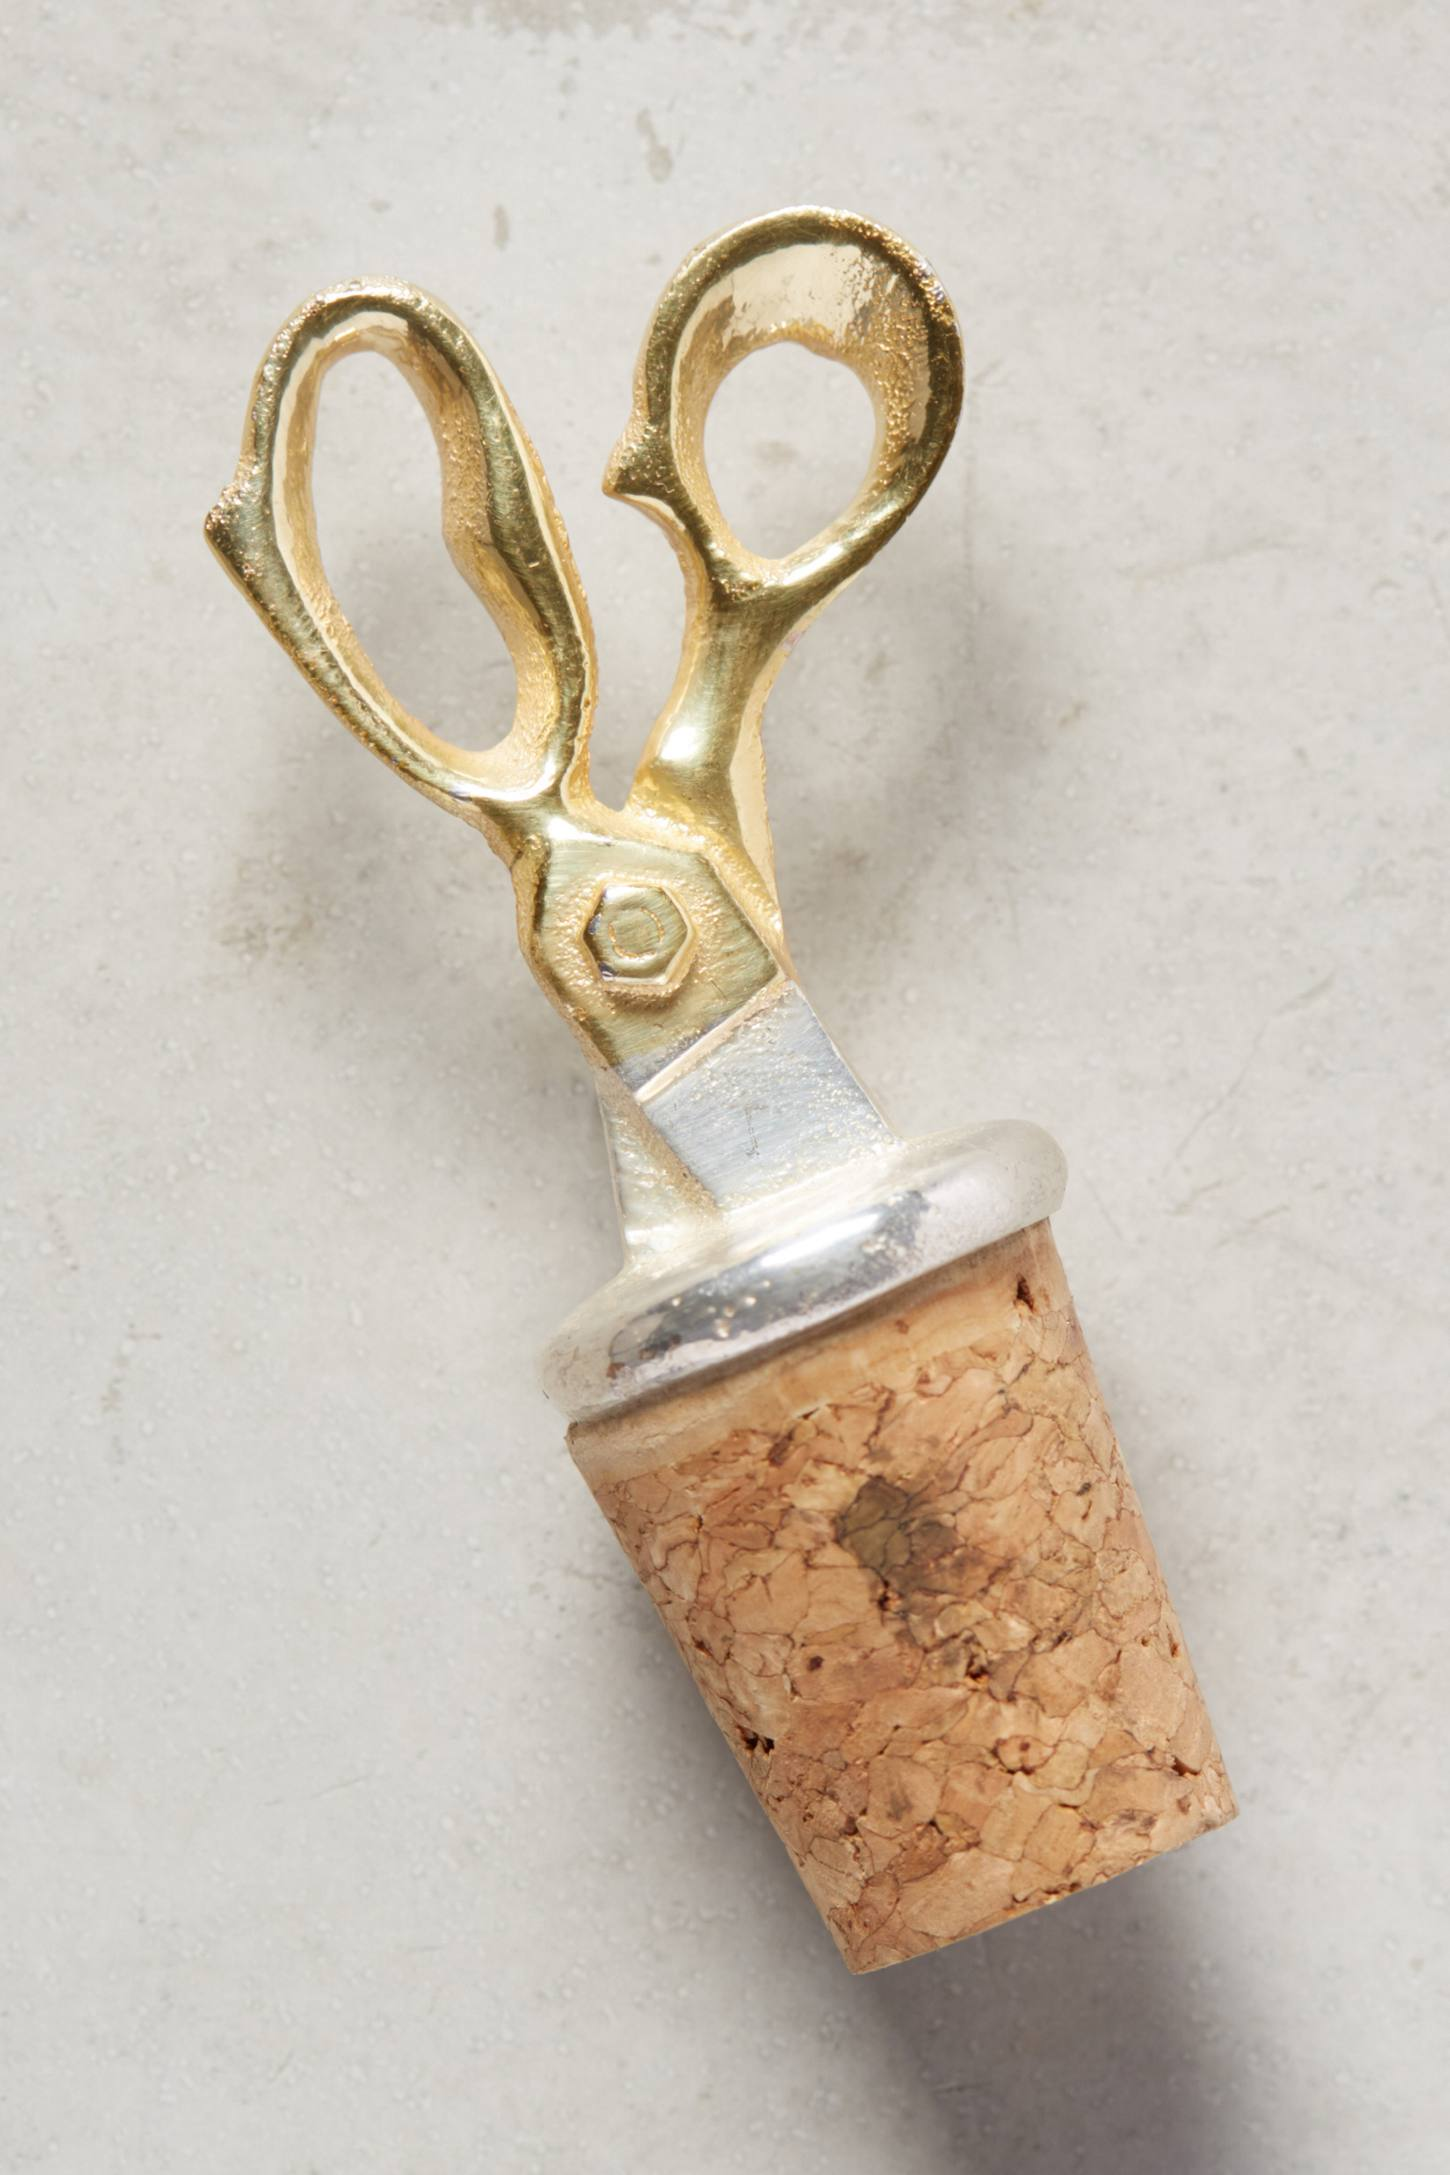 Sewing Supplies Bottle Stopper